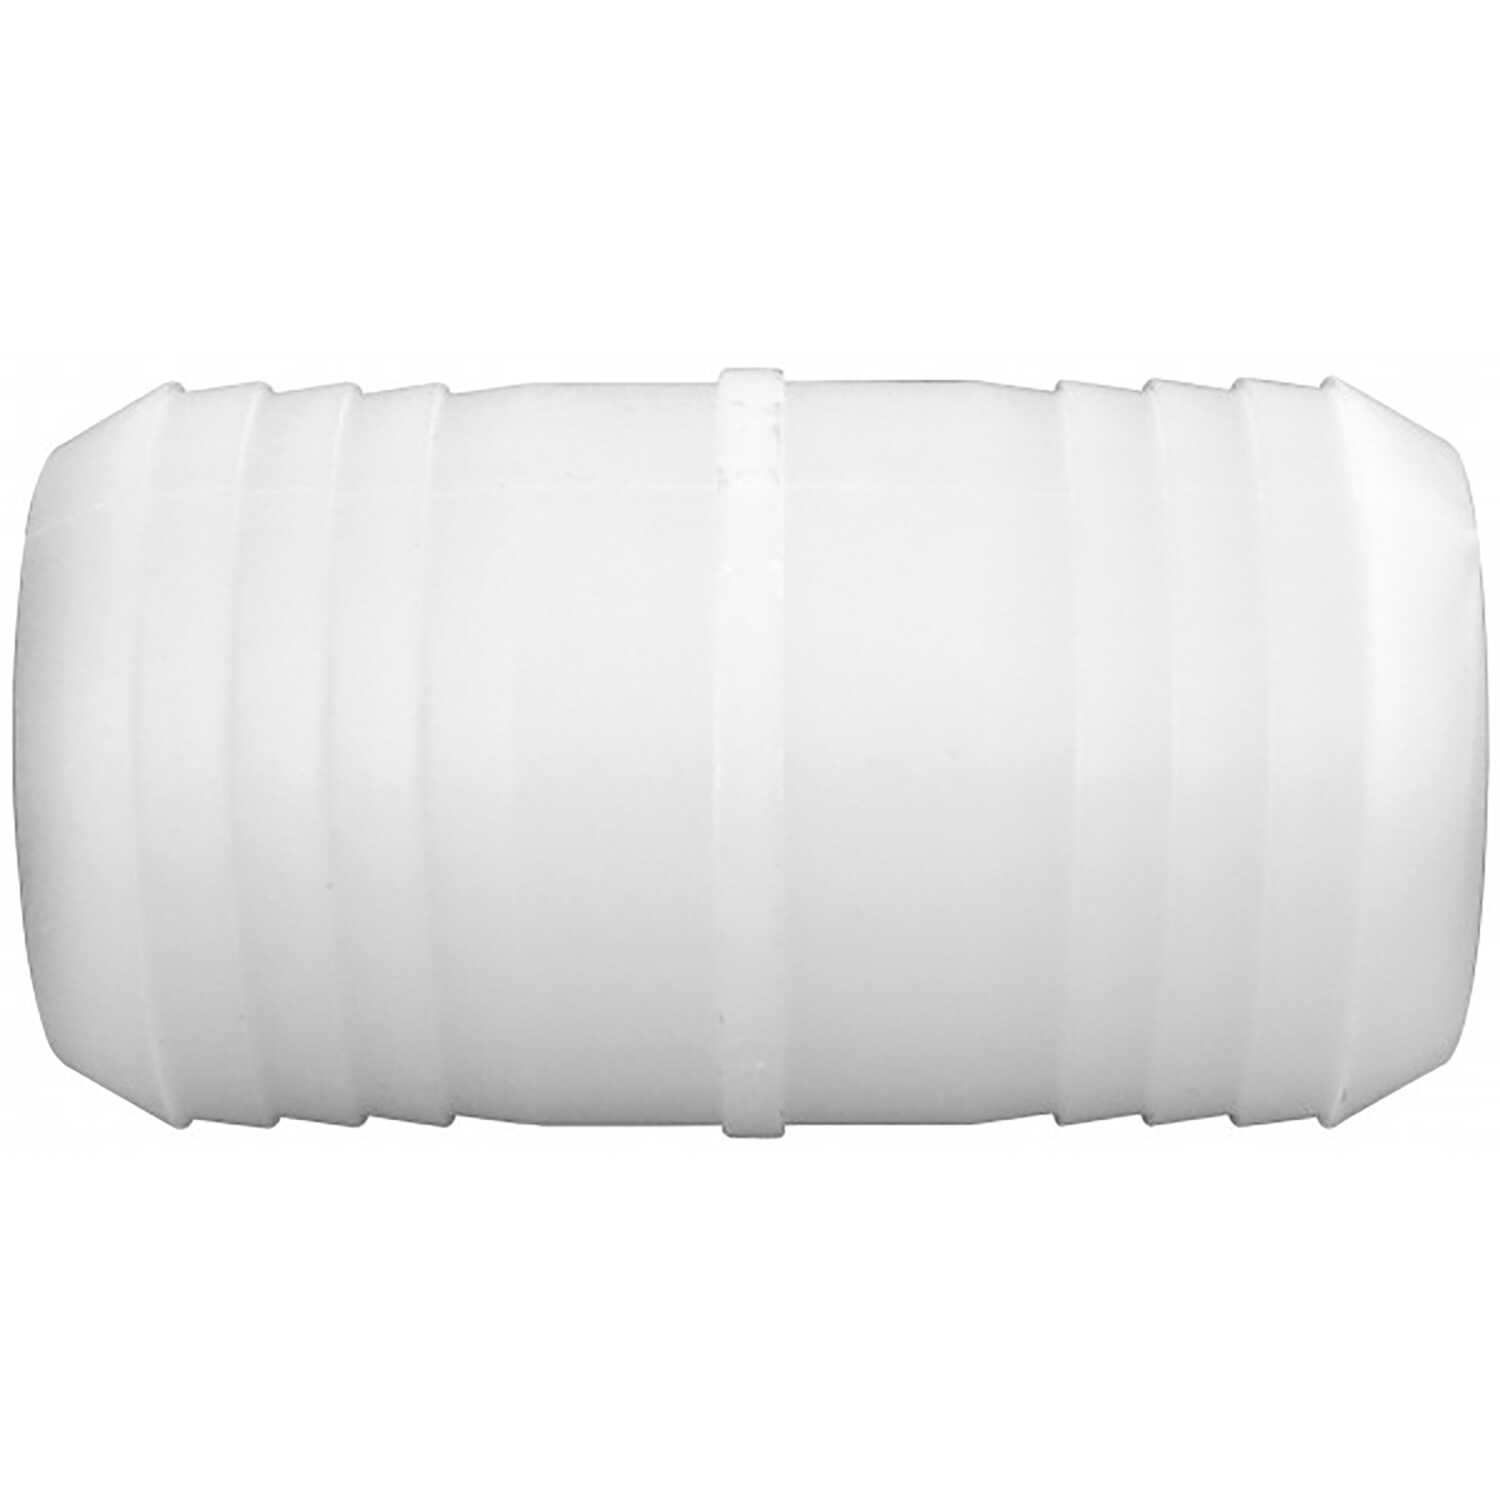 Green Leaf  3/8 in. Barb   x 5/8 in. Dia. Barb  Nylon  Hose Adapter